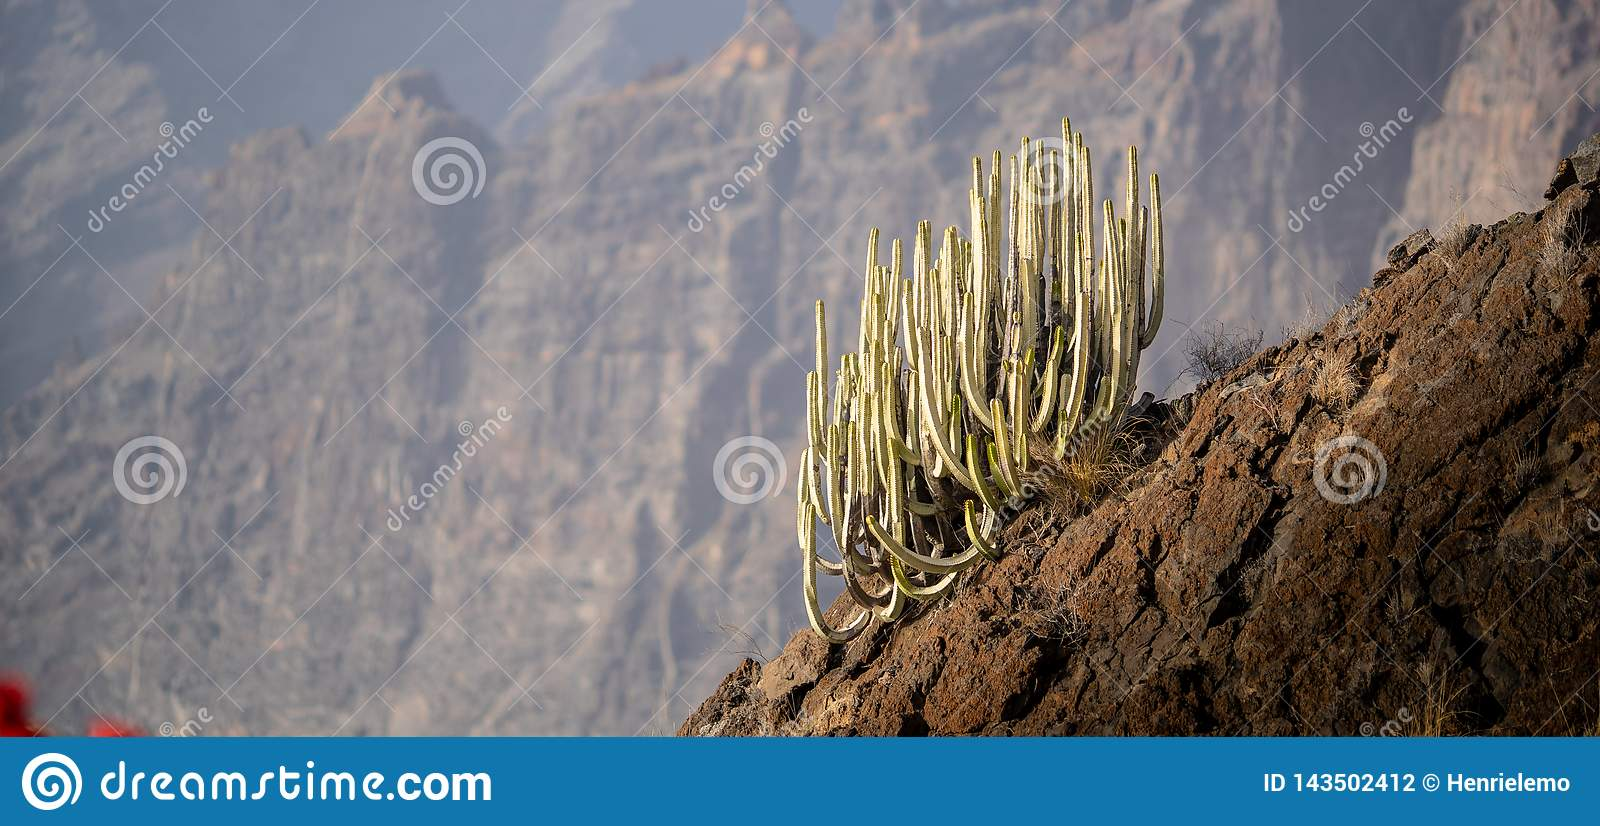 Cactus on a hill with bokeh on the background to isolate the cactus and showcase the high altitude and scale